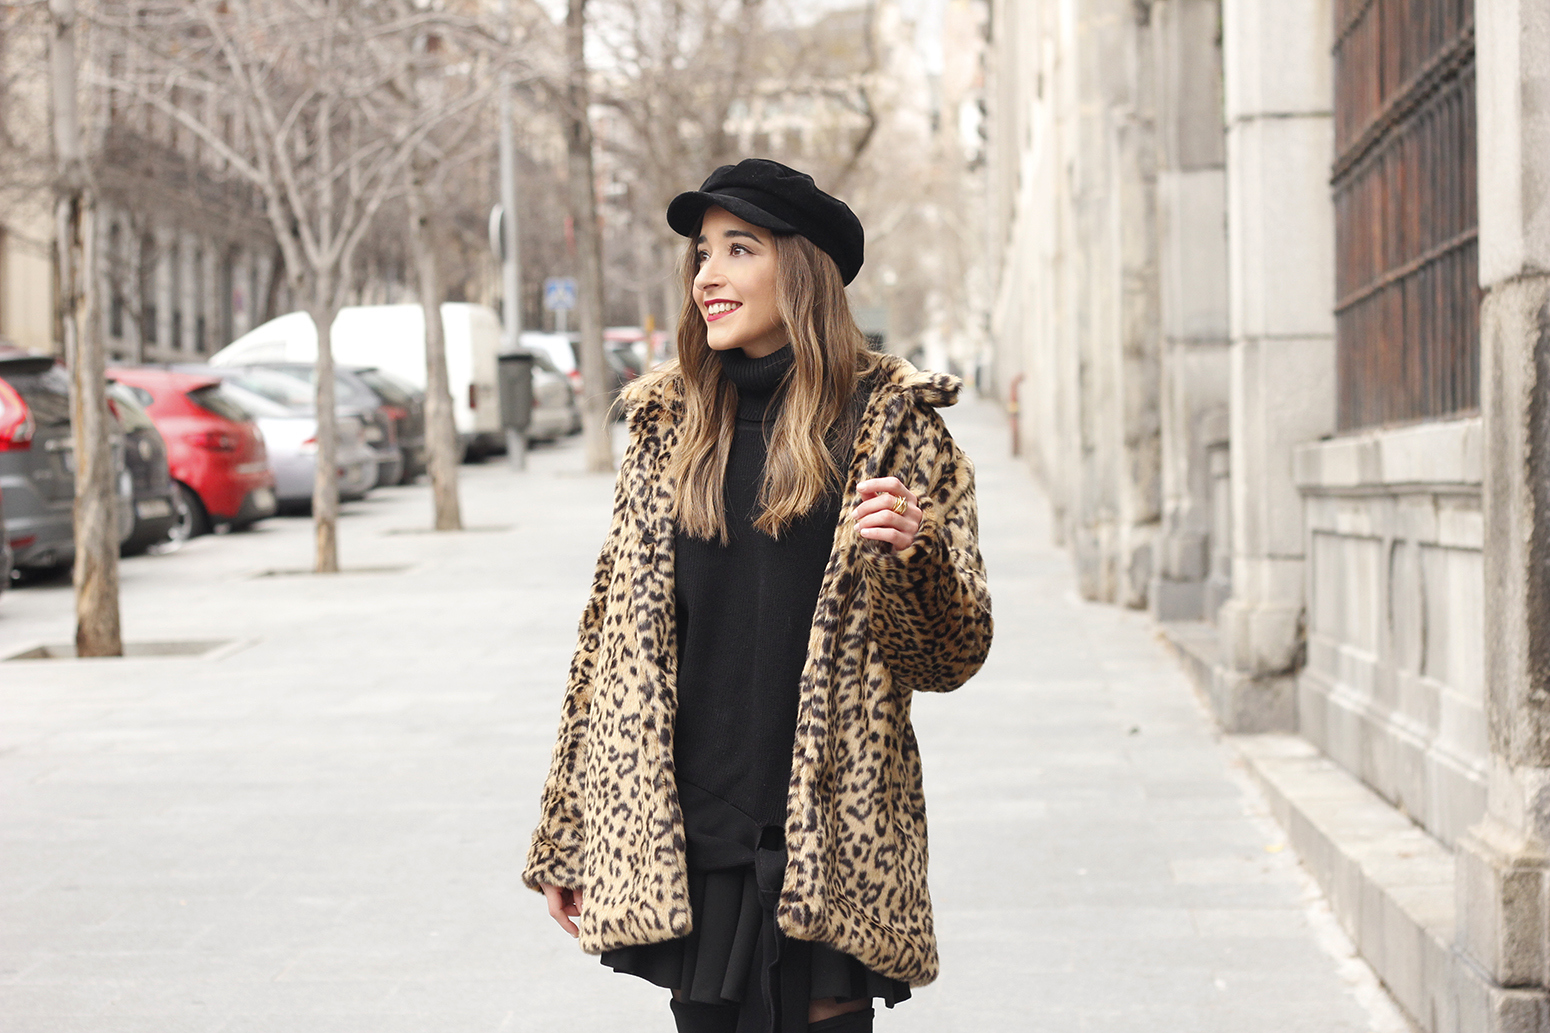 leopard coat black outfit over the knee boats givenchy black cap winter outfit08